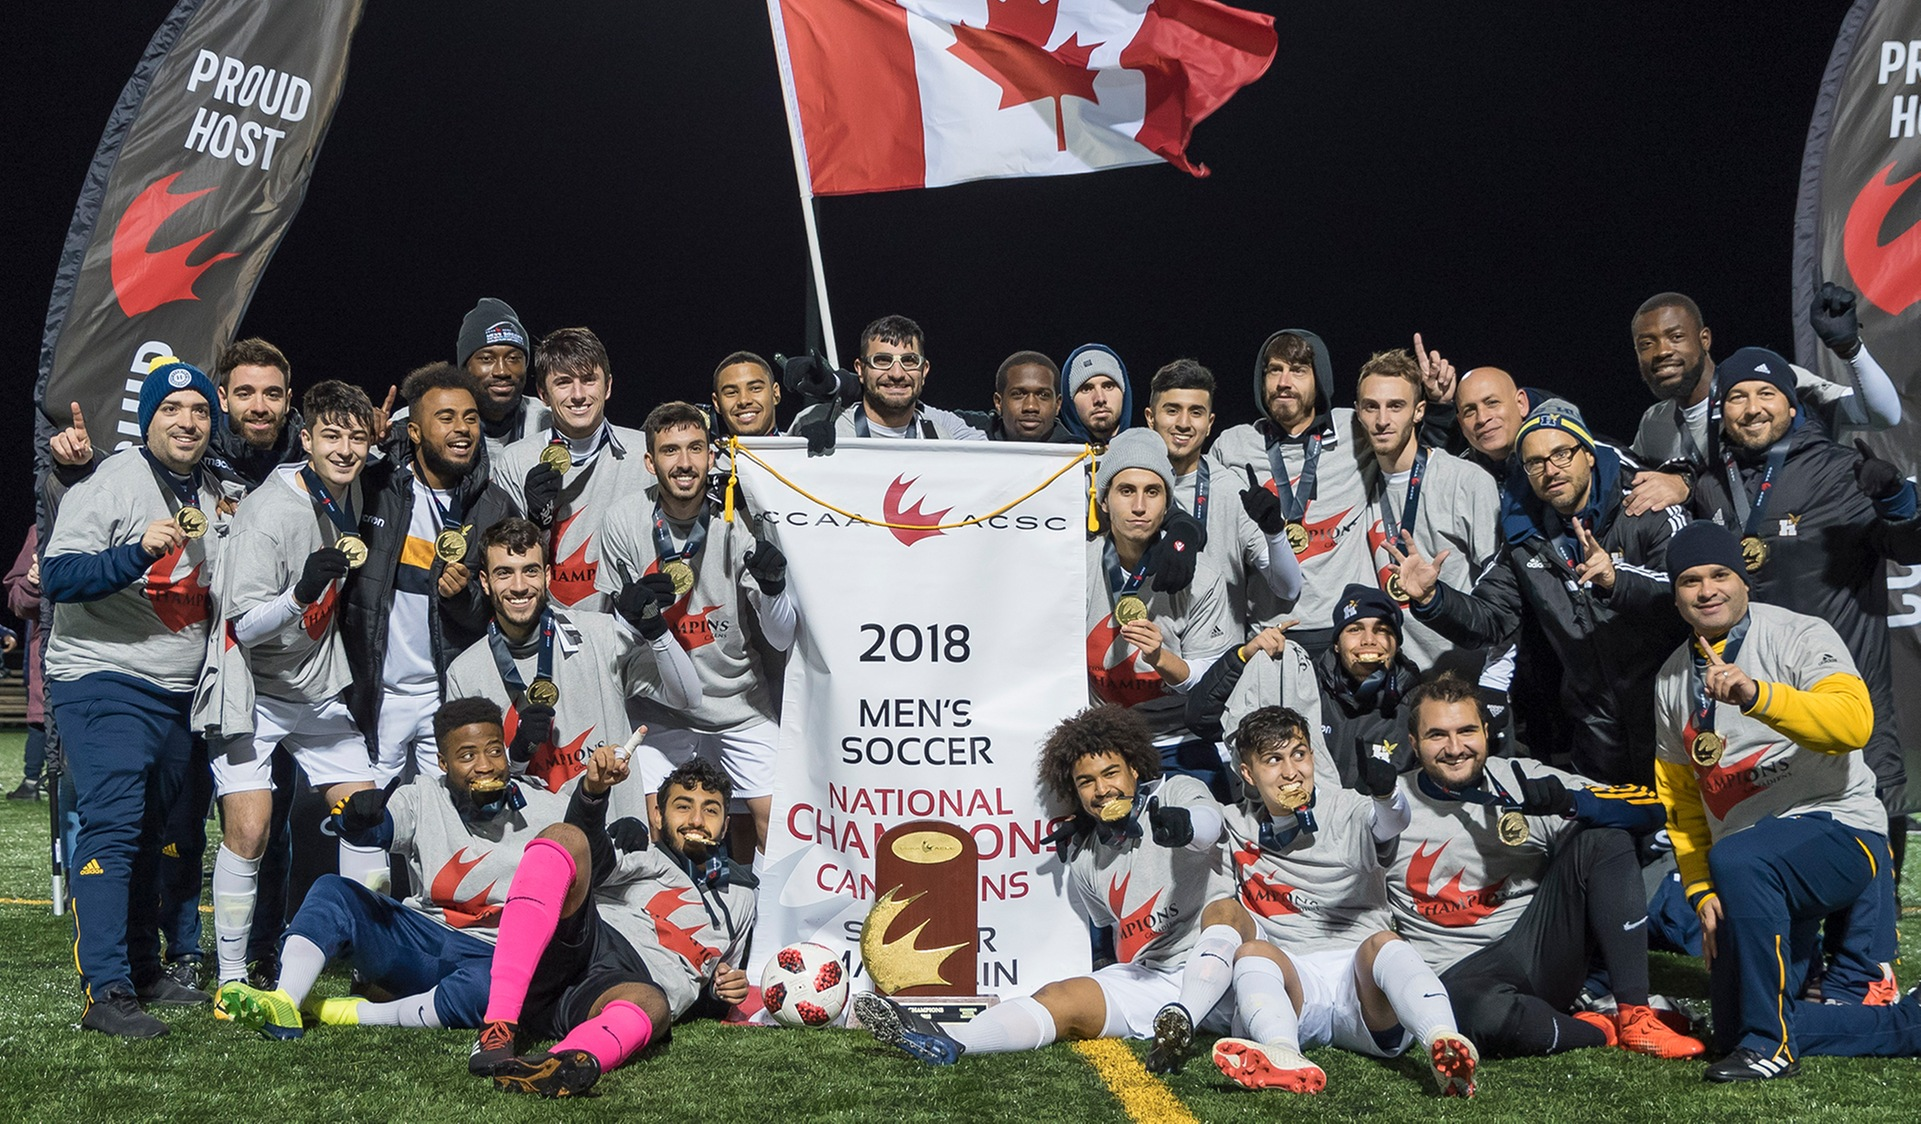 SEVENTH HEAVEN: MEN'S SOCCER WINS CCAA NATIONAL CHAMPIONSHIP